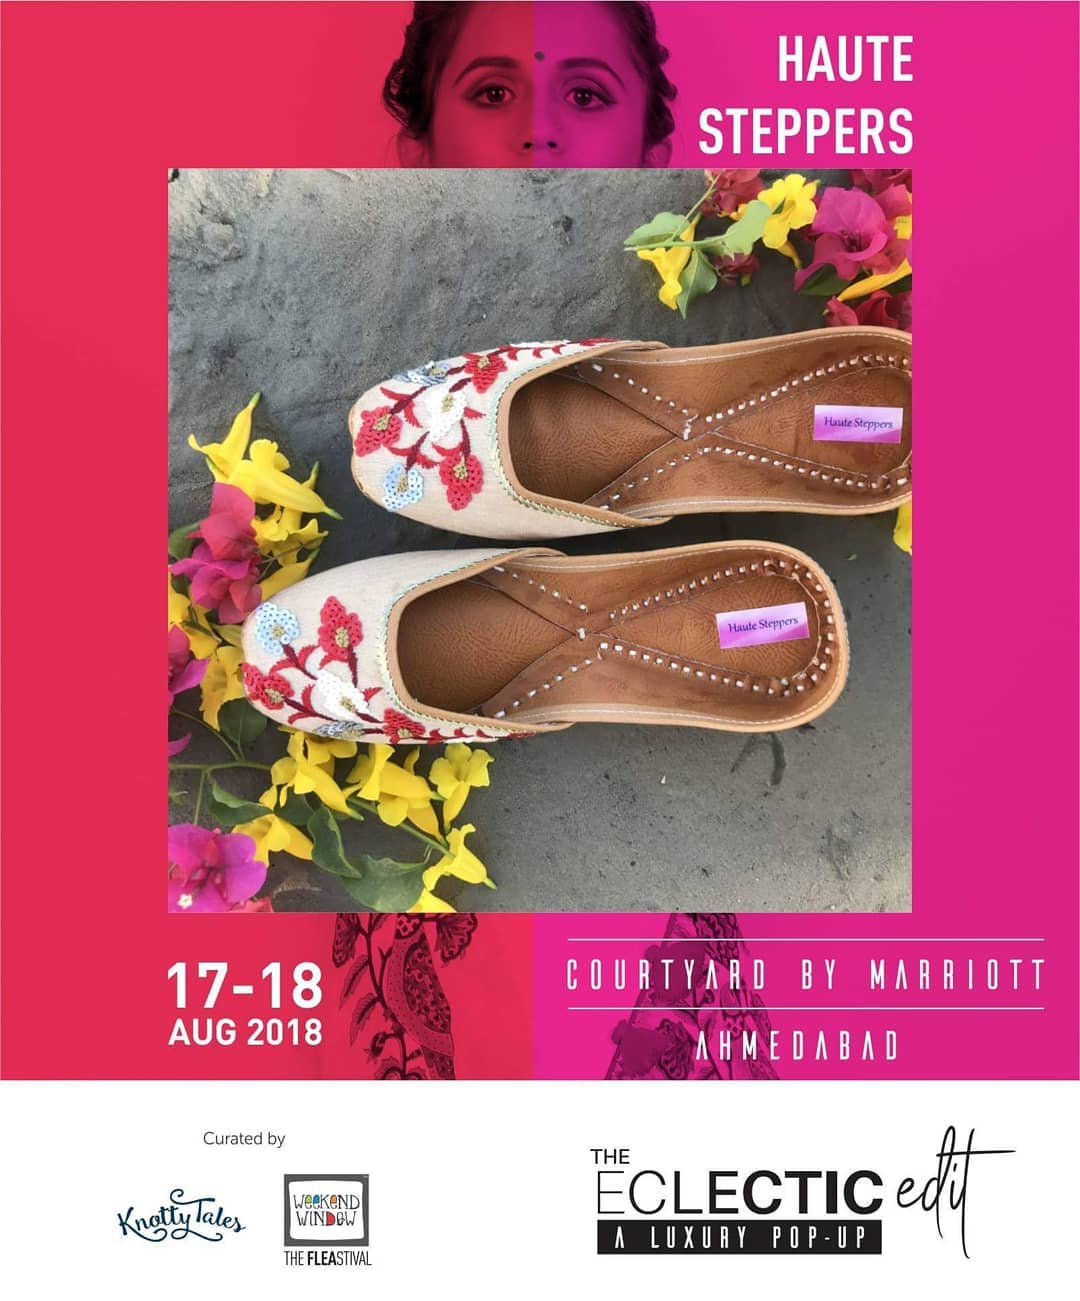 Zardozi, thread embroidery, mirror work, block prints, embellishments,  kundan work and many such detailed juttis are designed by @hautesteppers from Jaipur. They are super excited to give Amdavadi women's jutti statement a fresh take.  65+ brands showcasing at The Eclectic Edit - a curated luxury pop-up by @knottytales_kt & @weekendwindow  #juttis #footwear #handmade #handcrafted #detailing #design #mirrors #kundan #embroidery #cutdana #embellishments #theeclecticedit #knottytales #weekendwindow #happyfeet #shopping